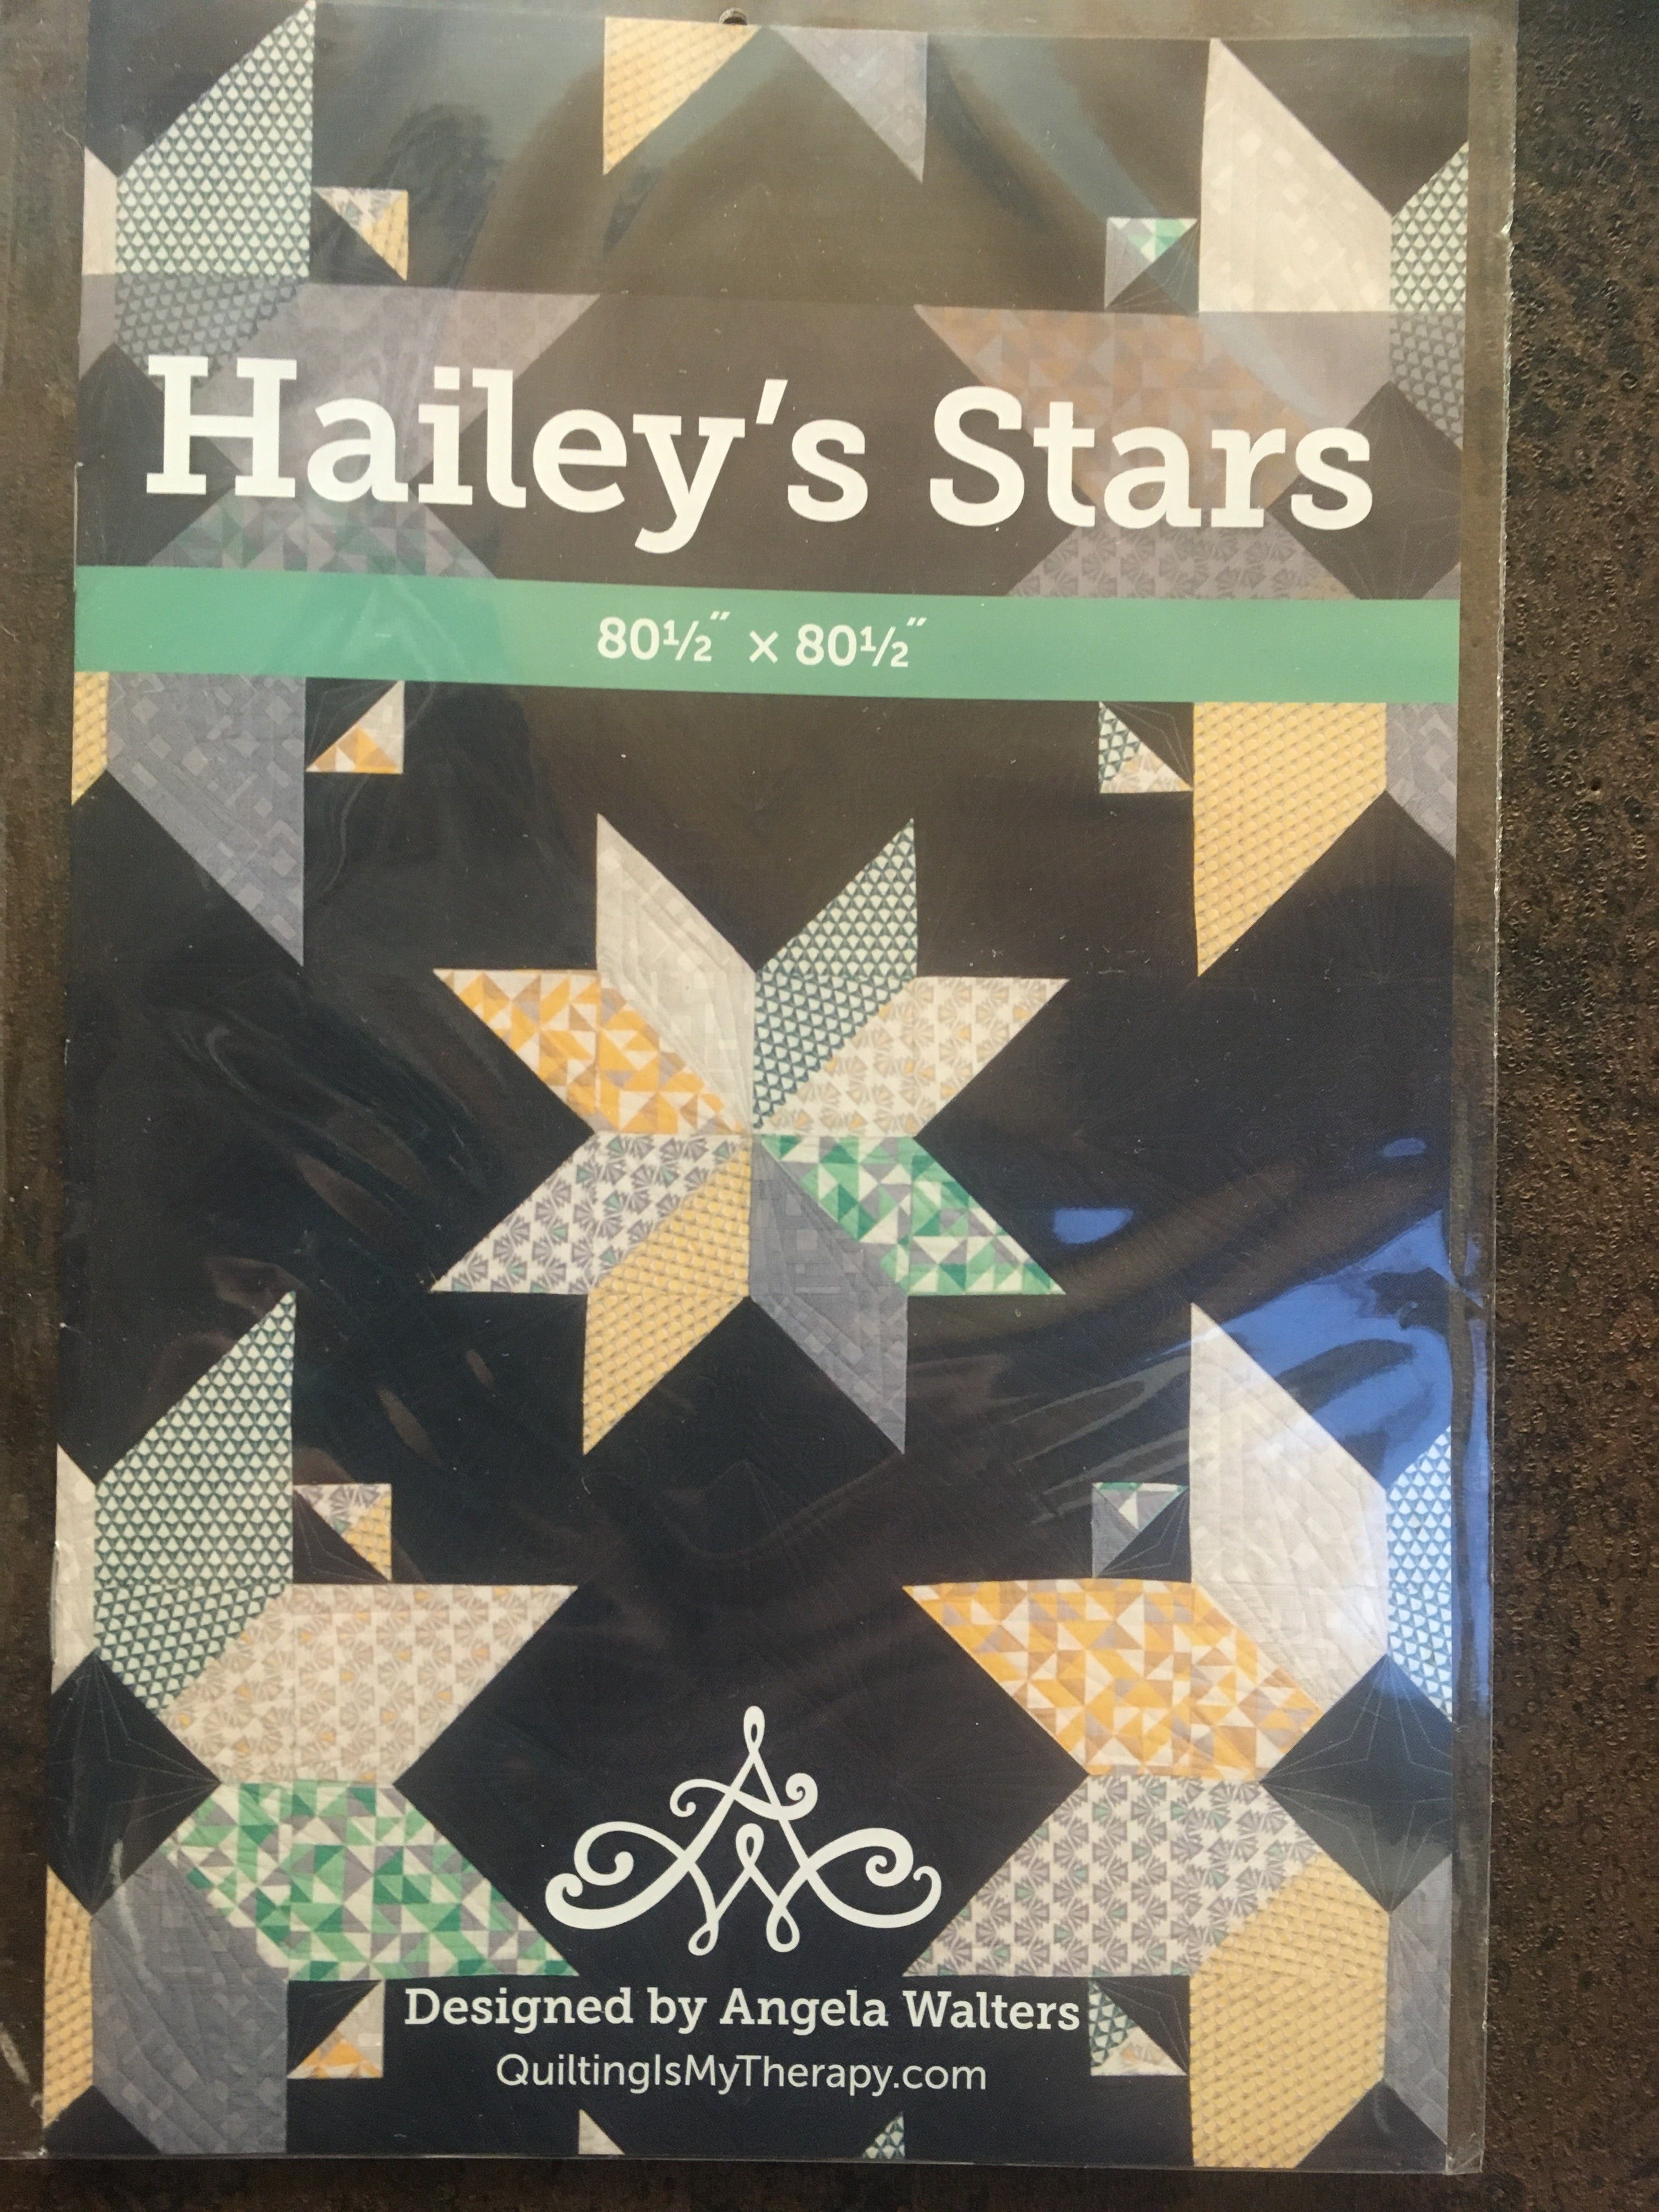 Hailey's Stars by Angela Walters